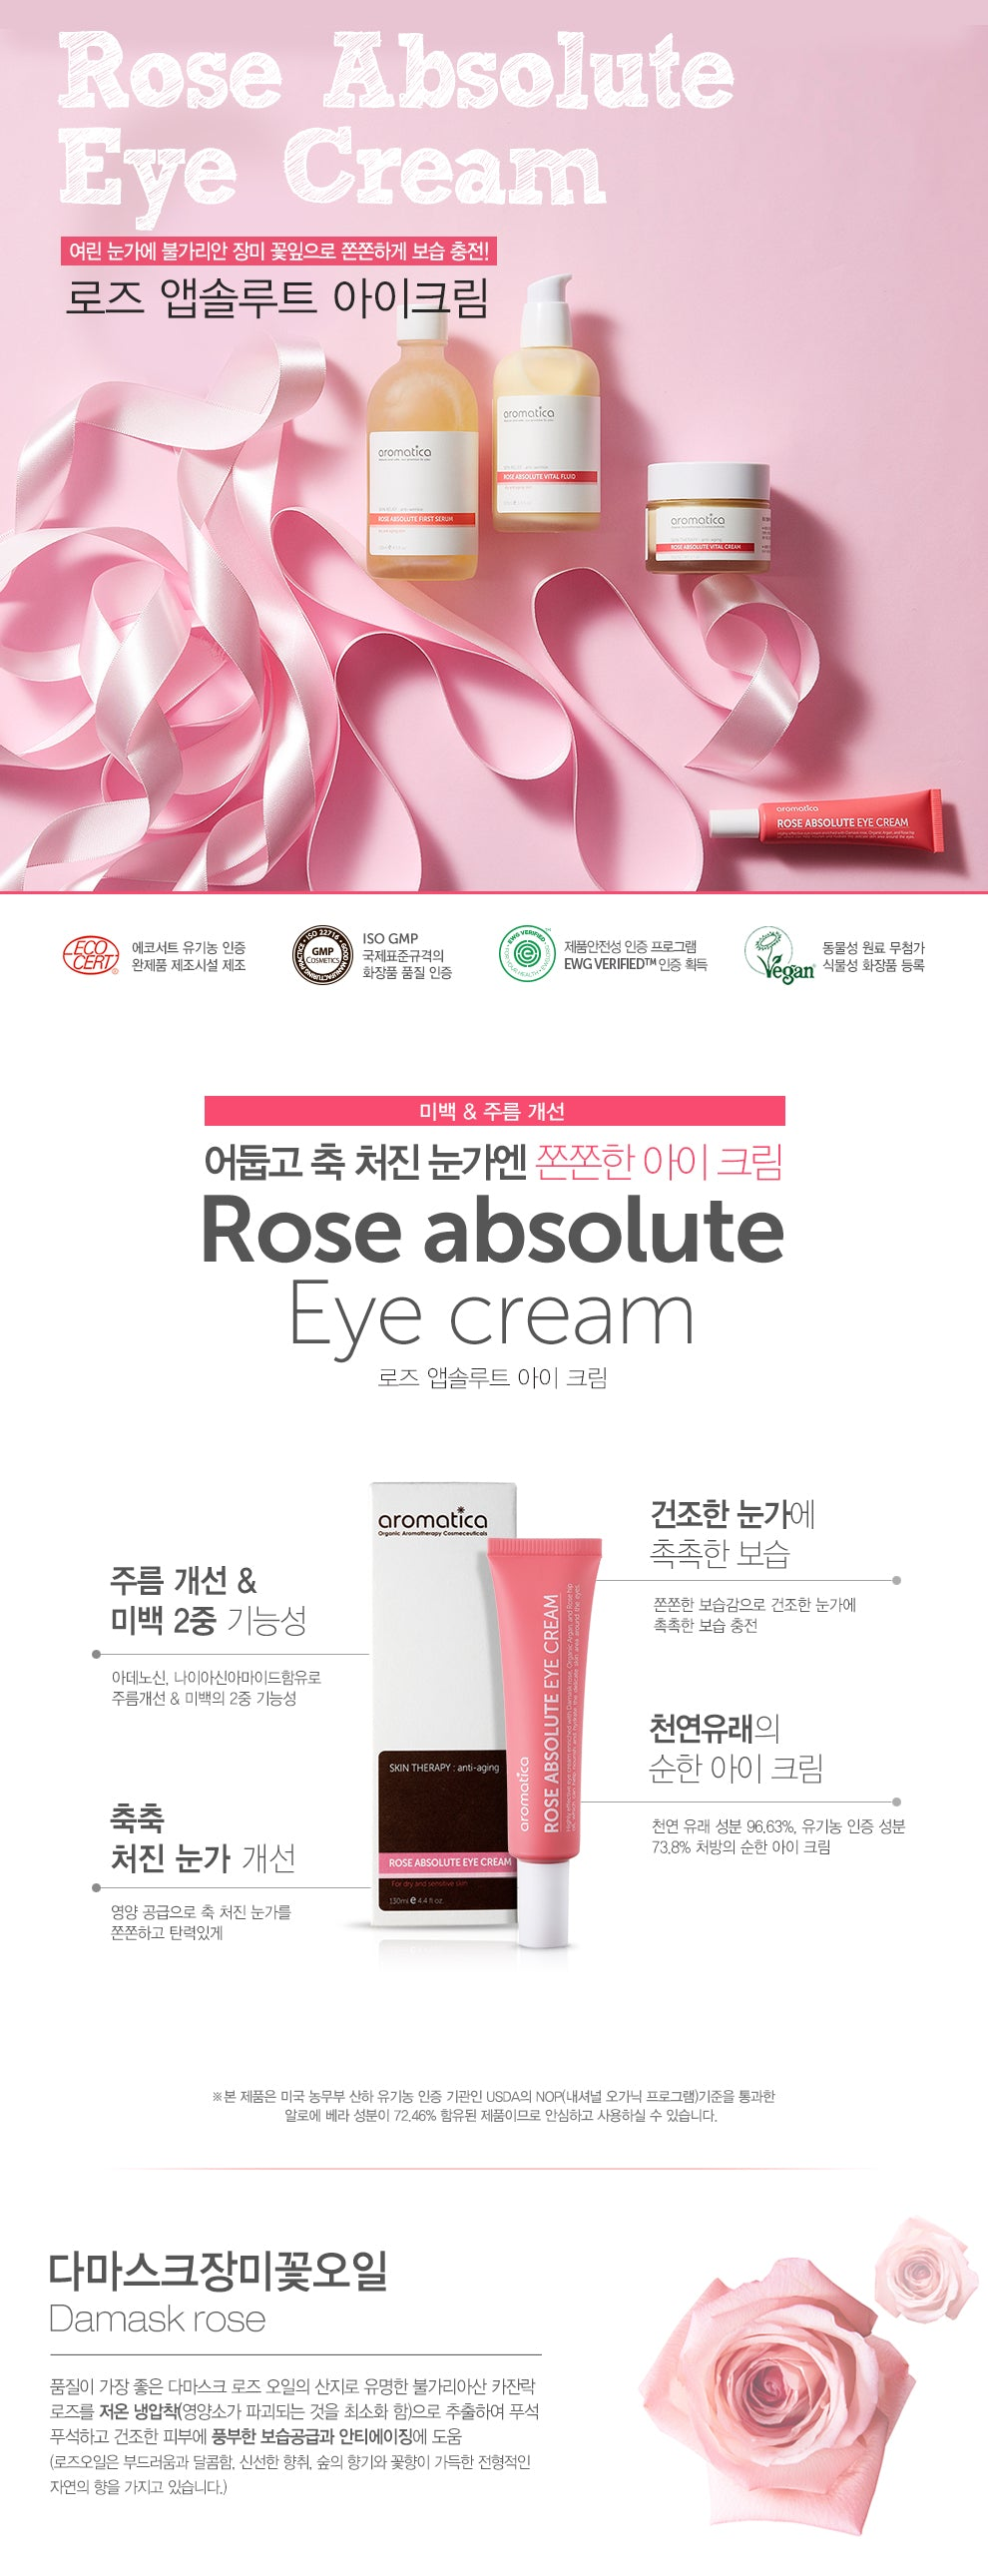 Aromatica - Rose Absolute Eye Cream